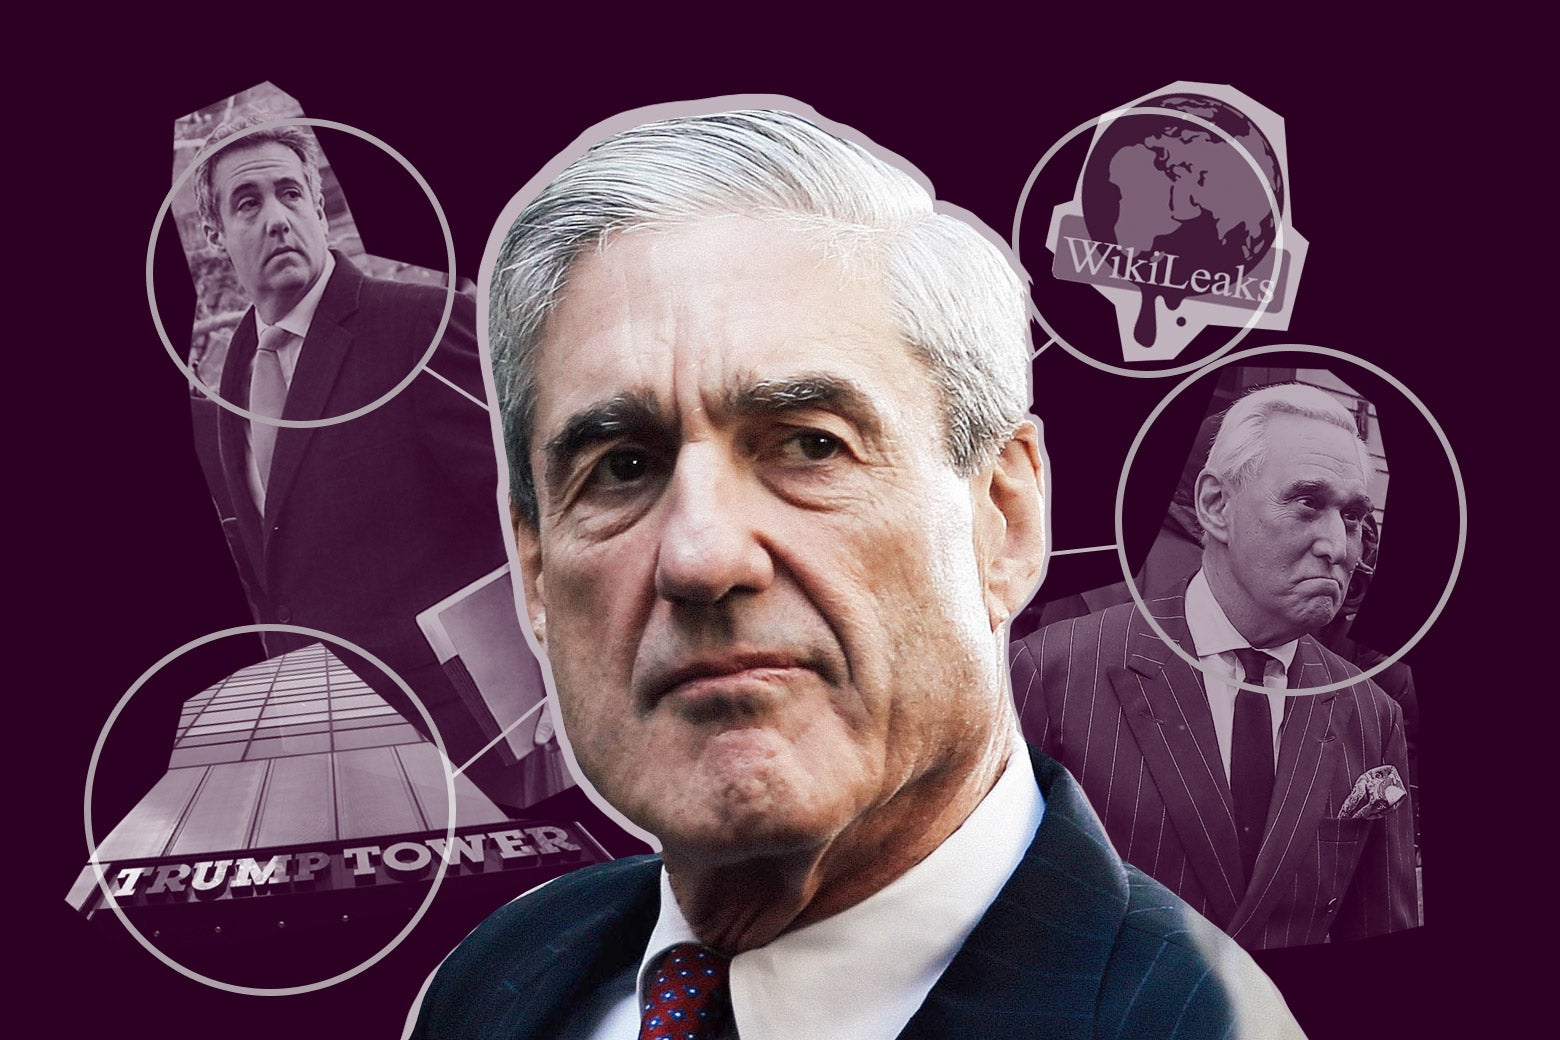 Collage of Robert Mueller surrounded by Trump Tower, Michael Cohen, the WikiLeaks logo, and Roger Stone.